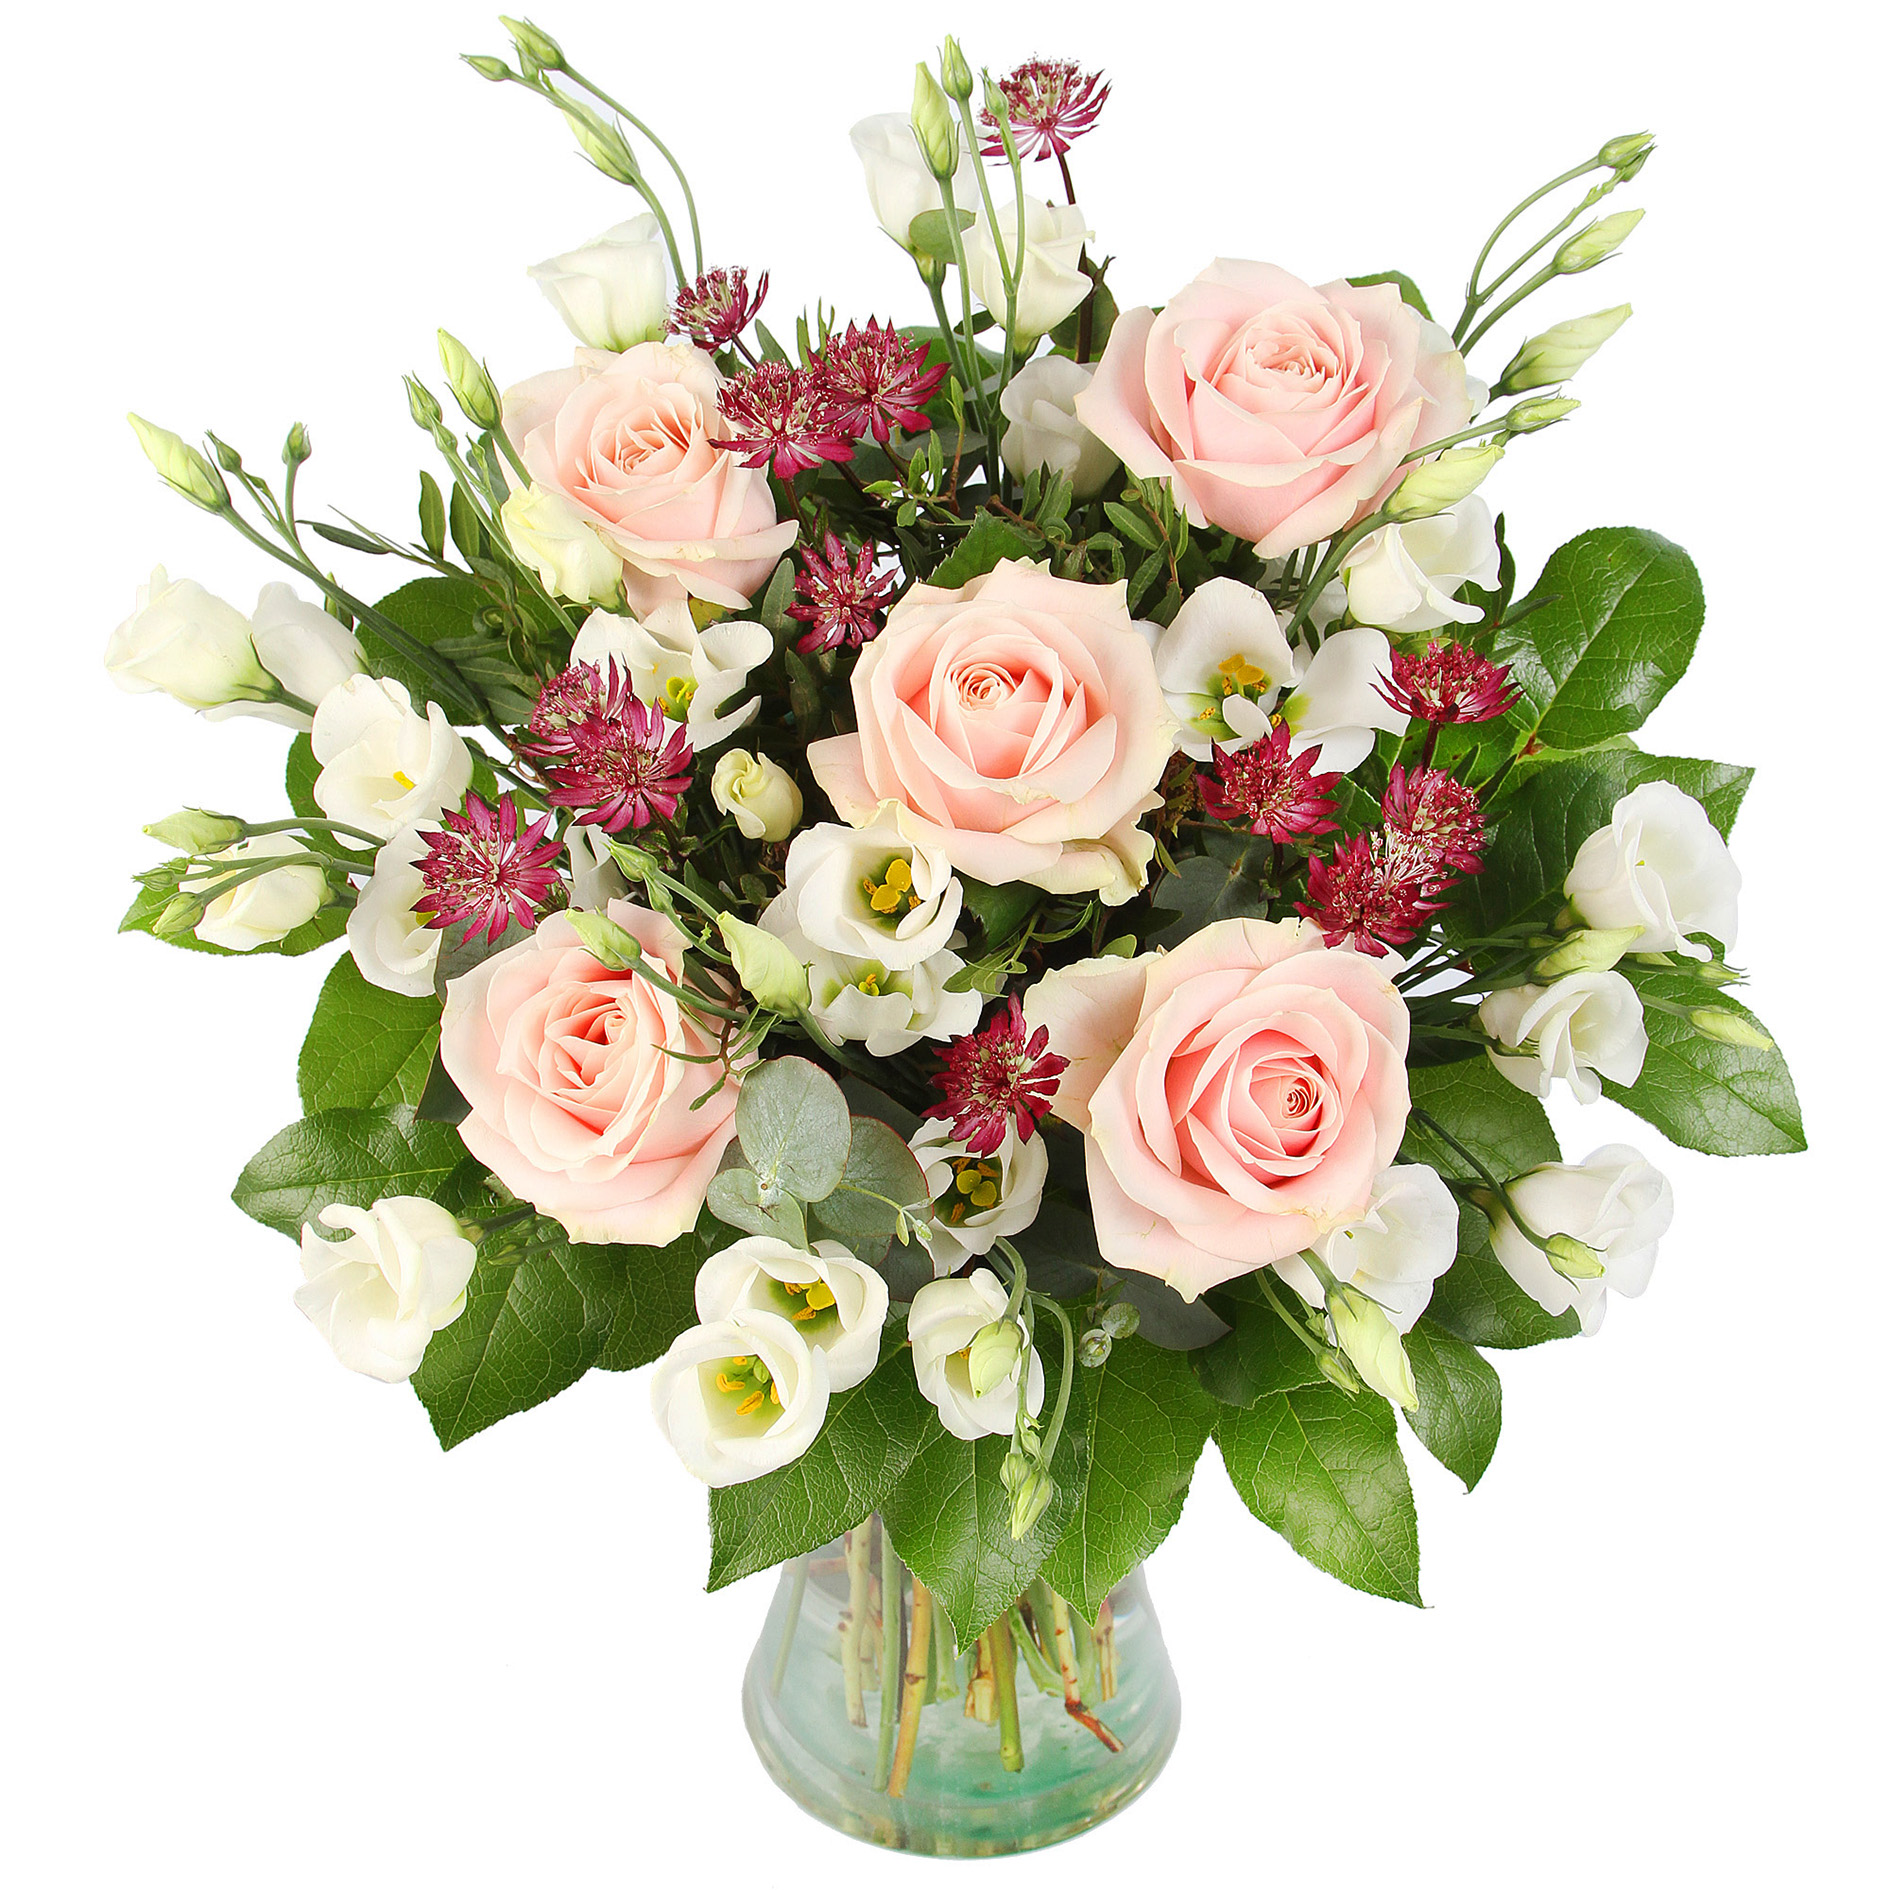 Bella bouquet from Serenata's Fair Trade flowers range. Flowers are imported from the EU, Africa and